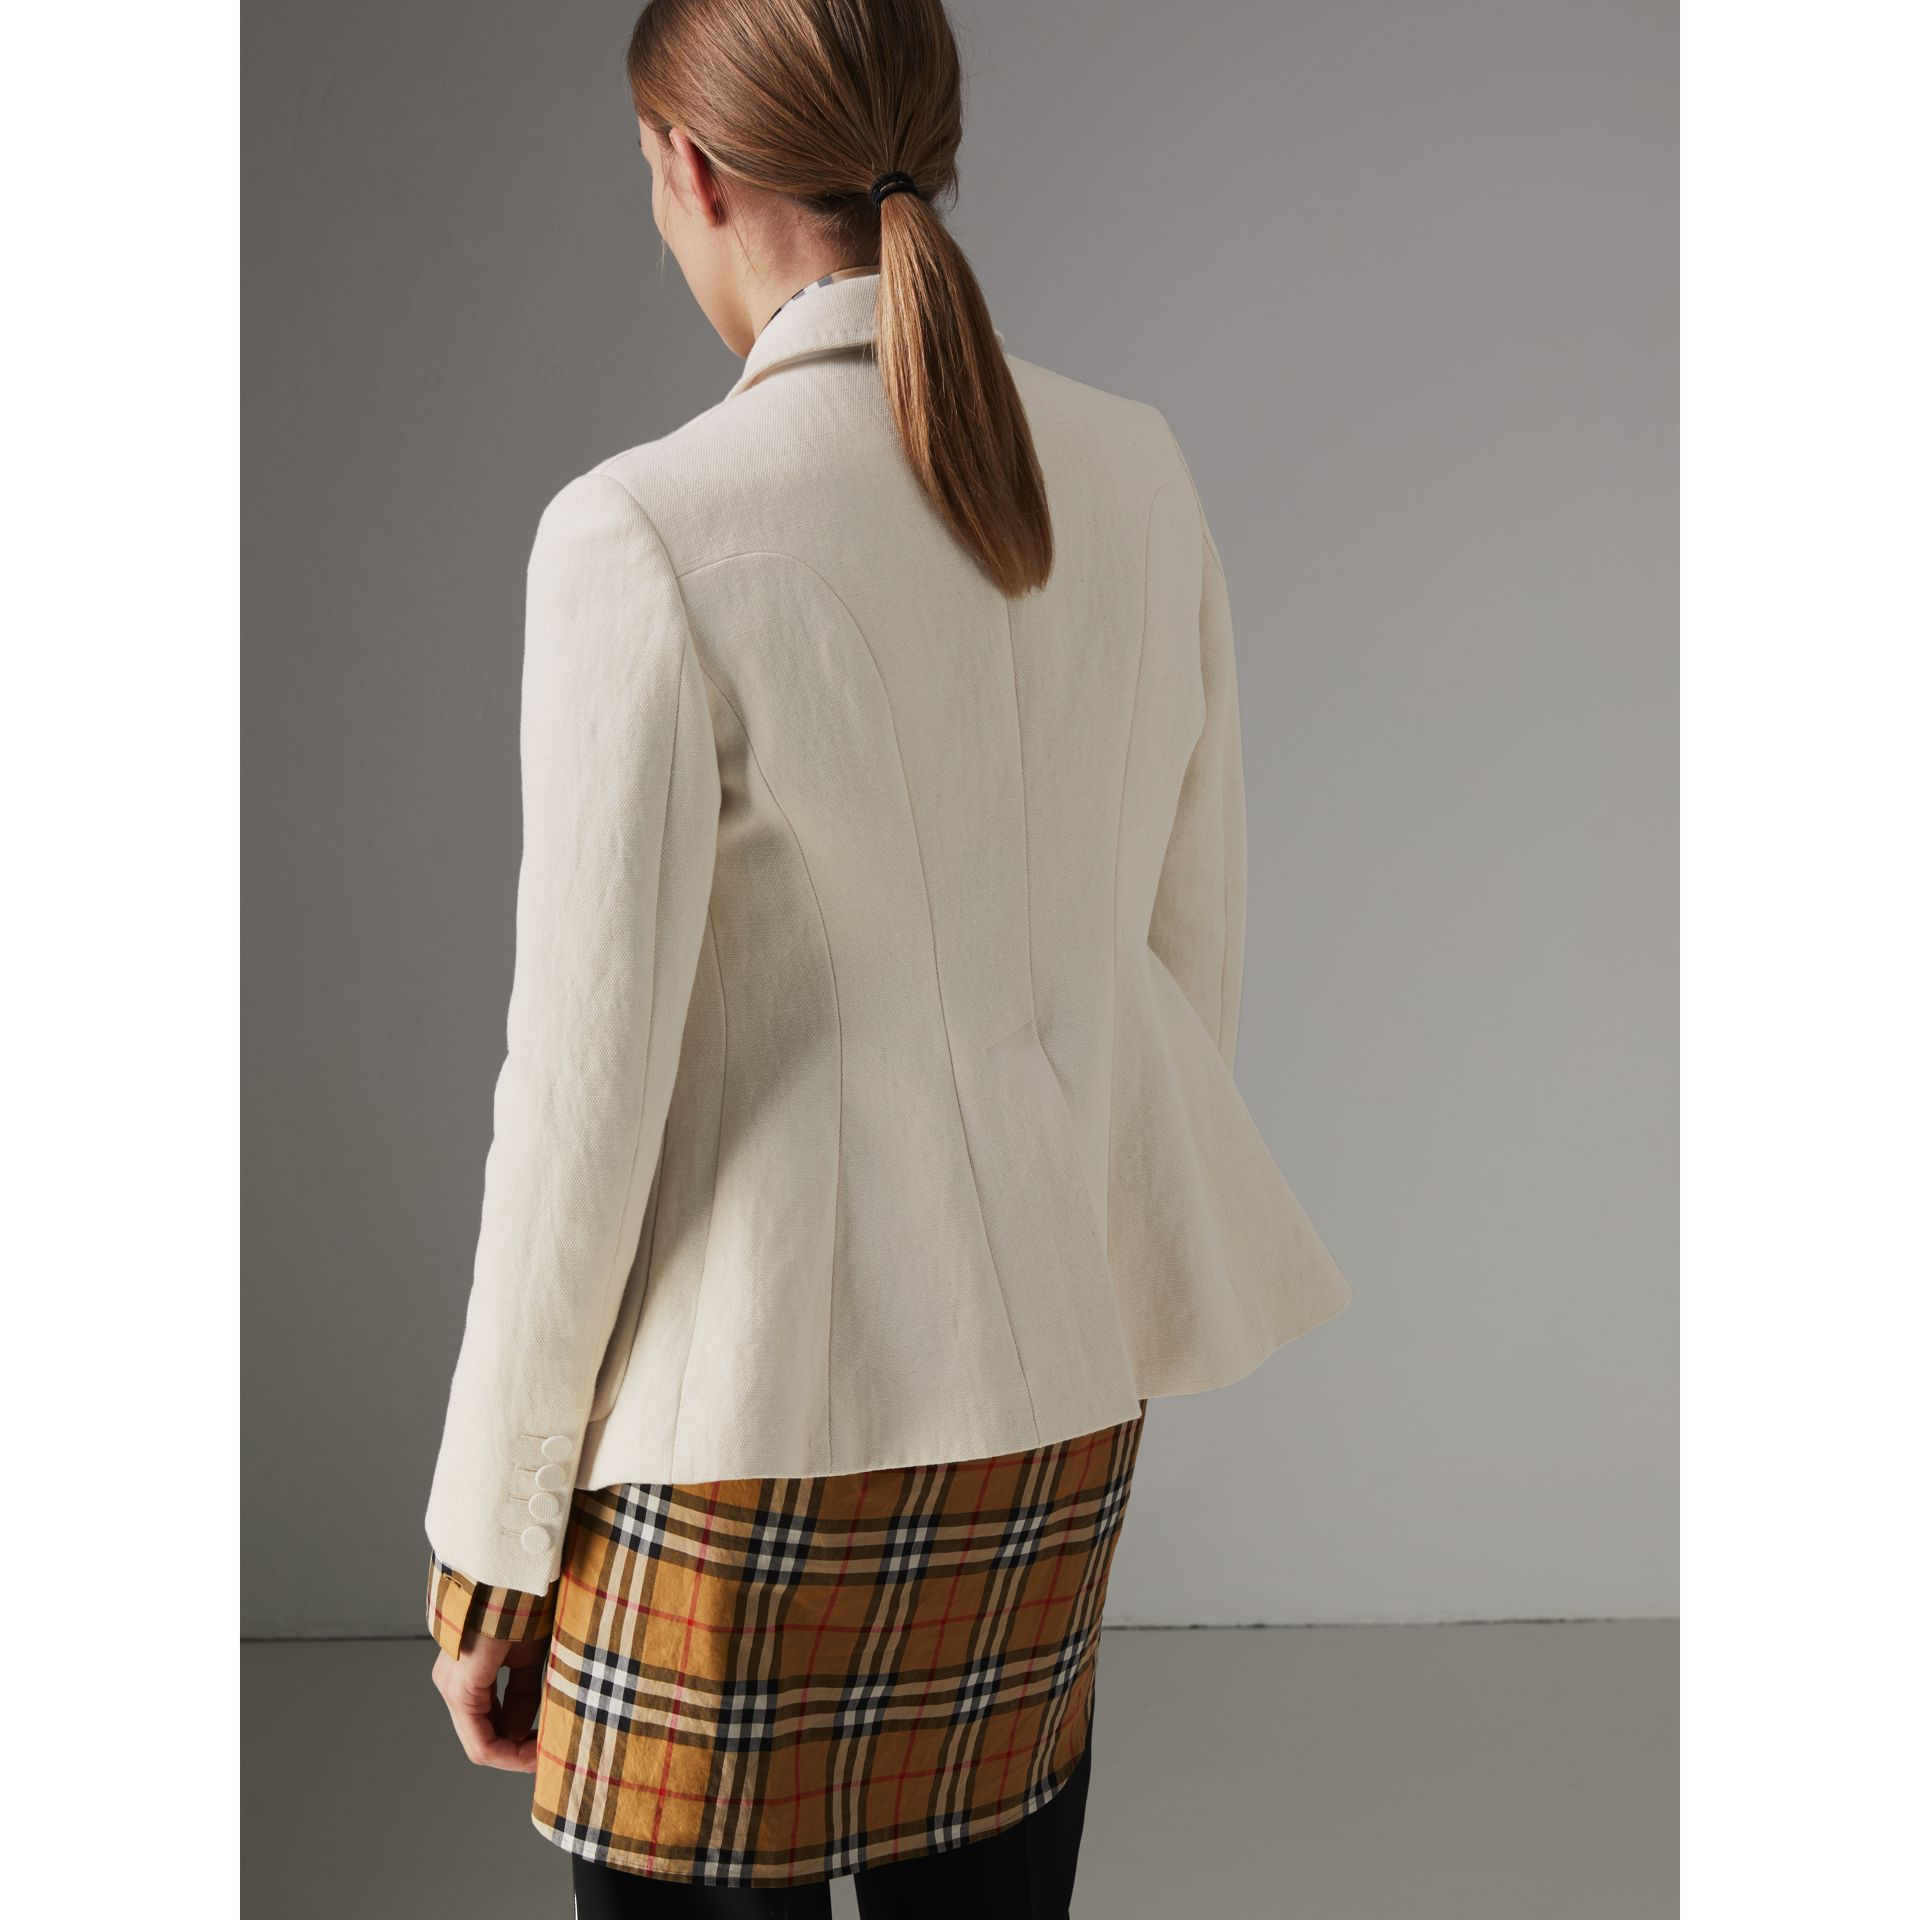 Cotton Linen Fitted Jacket in Off White - Women | Burberry United Kingdom - gallery image 2